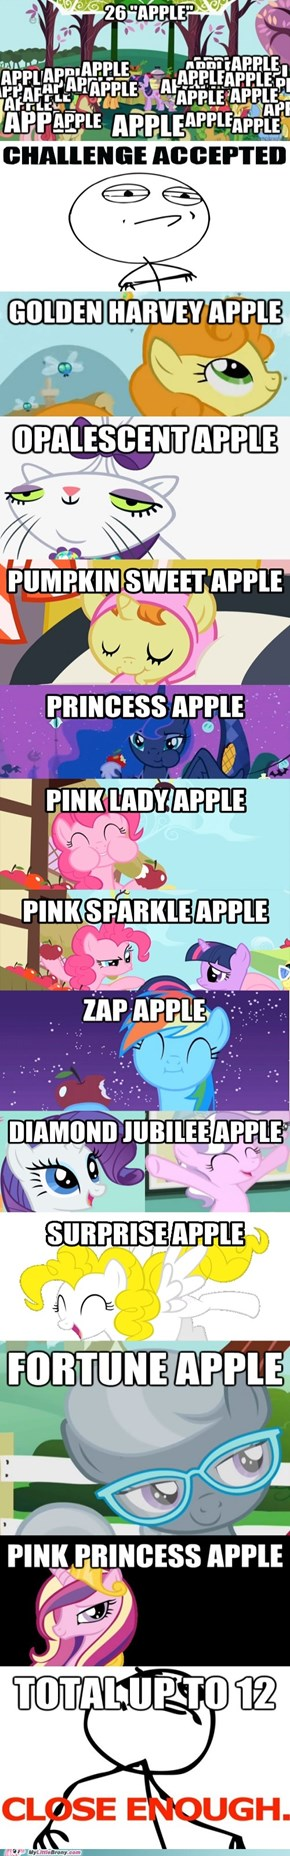 Apples, apples everywhere